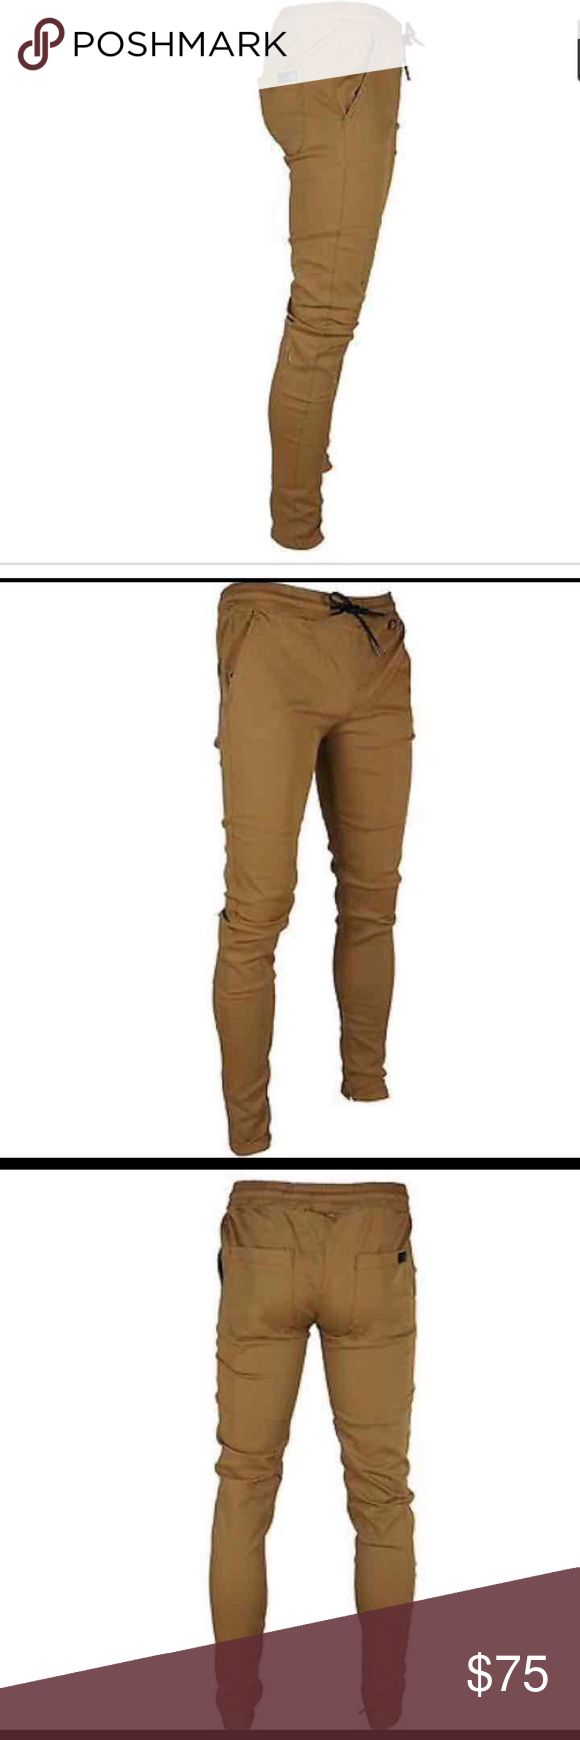 Men's camel color joggers KDNK men's tapered ankle zipper slim fit jogger pants  30-38 I bought them and they didn't fit me and I paid $75 for them Jeans Skinny